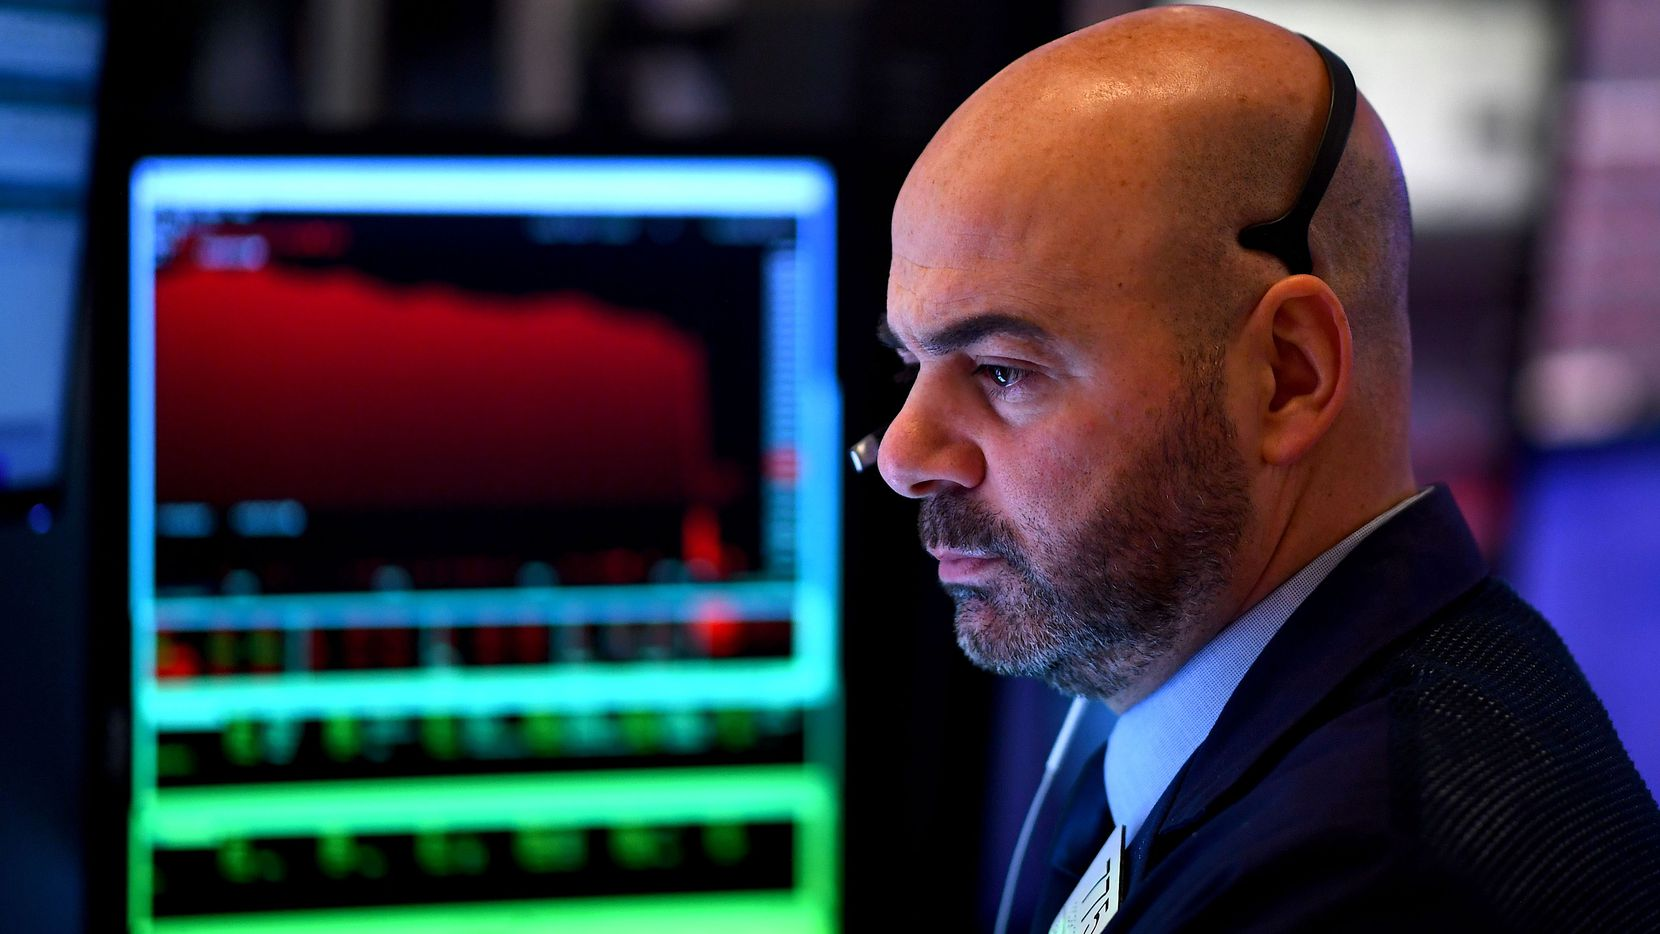 Traders work during the opening bell at the New York Stock Exchange (NYSE) on February 28, 2020 at Wall Street in New York City. - Losses on Wall Street deepened following a bruising open, as global markets were poised to conclude their worst week since 2008 with another rout.